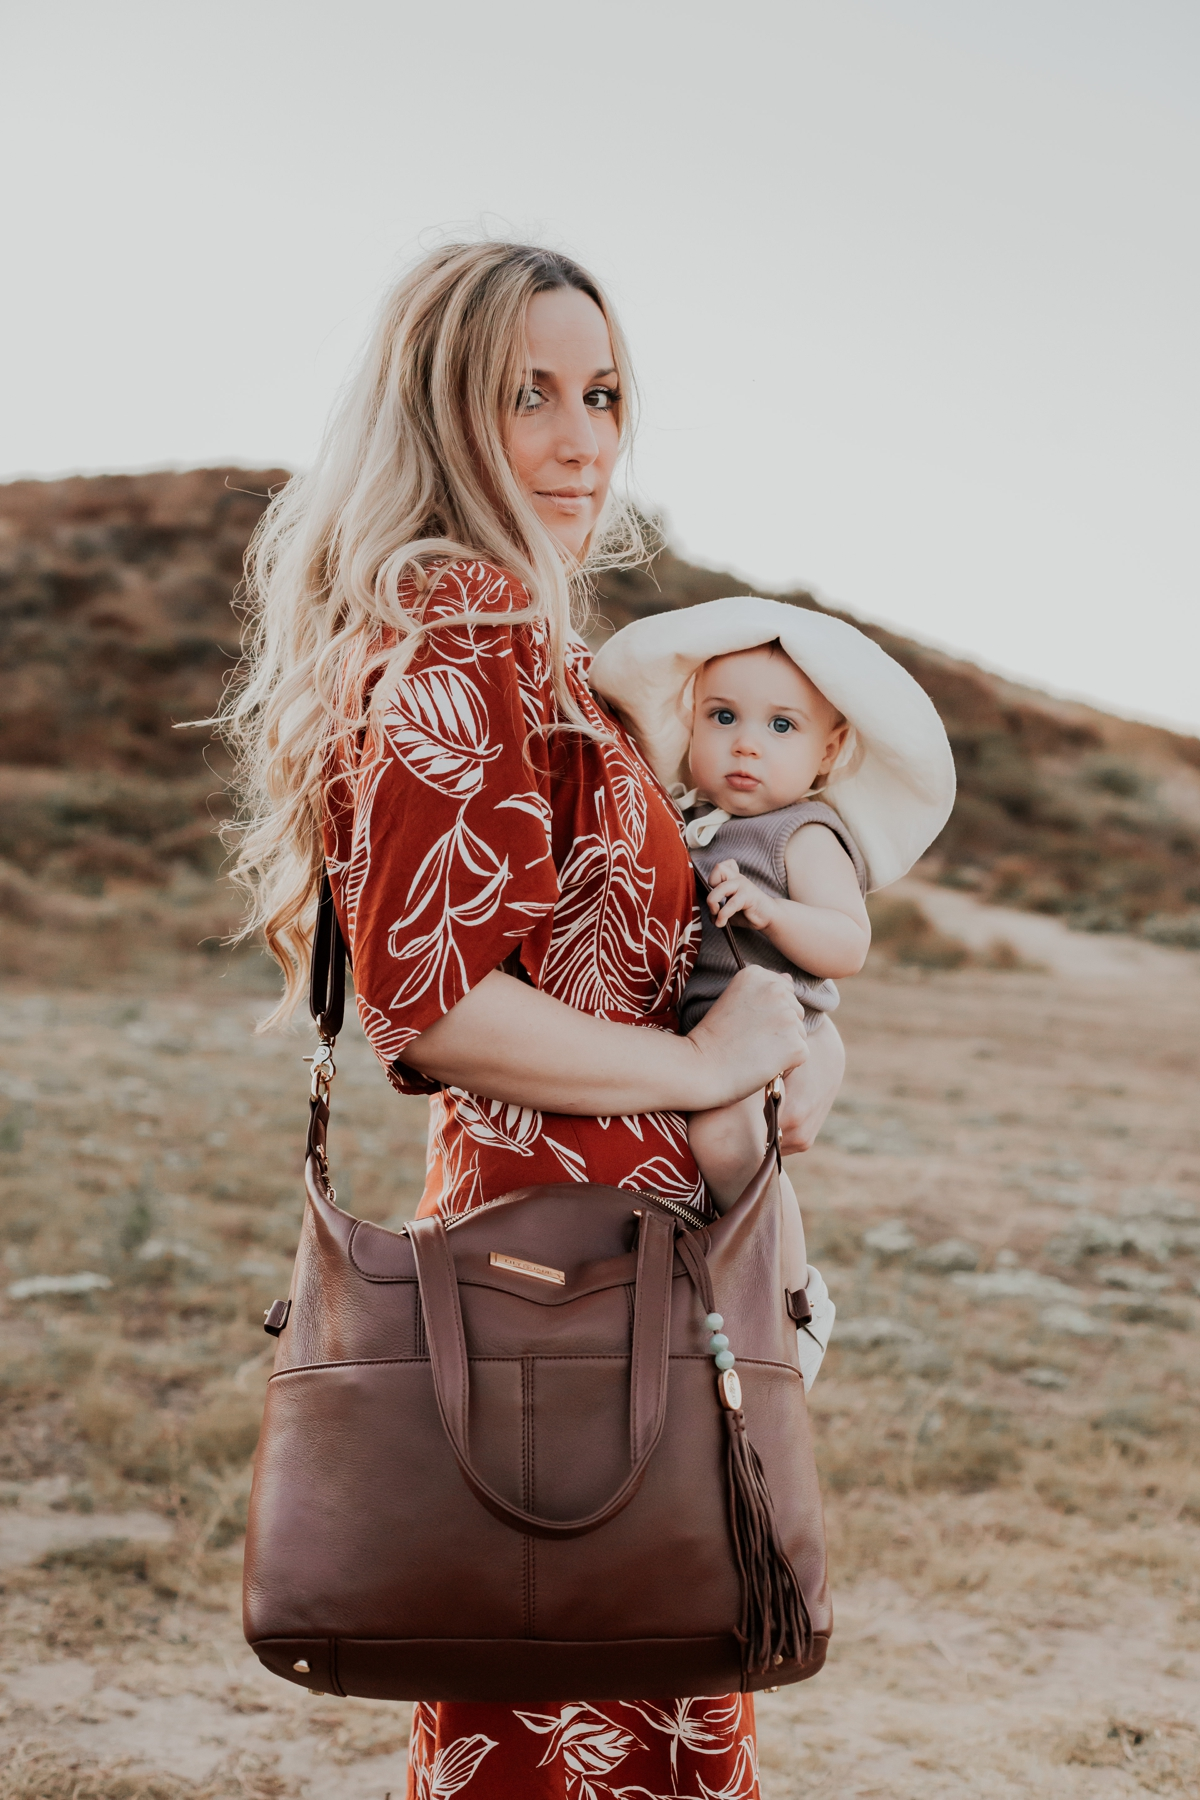 Kandis_Marino_Photography_Lifestyle_Lily_Jade_Diaper_Bag_Influencer_Abassador_Baby_Mom_Blogger_Mommy_Blog_Newborn_Pregnancy_0139.jpg